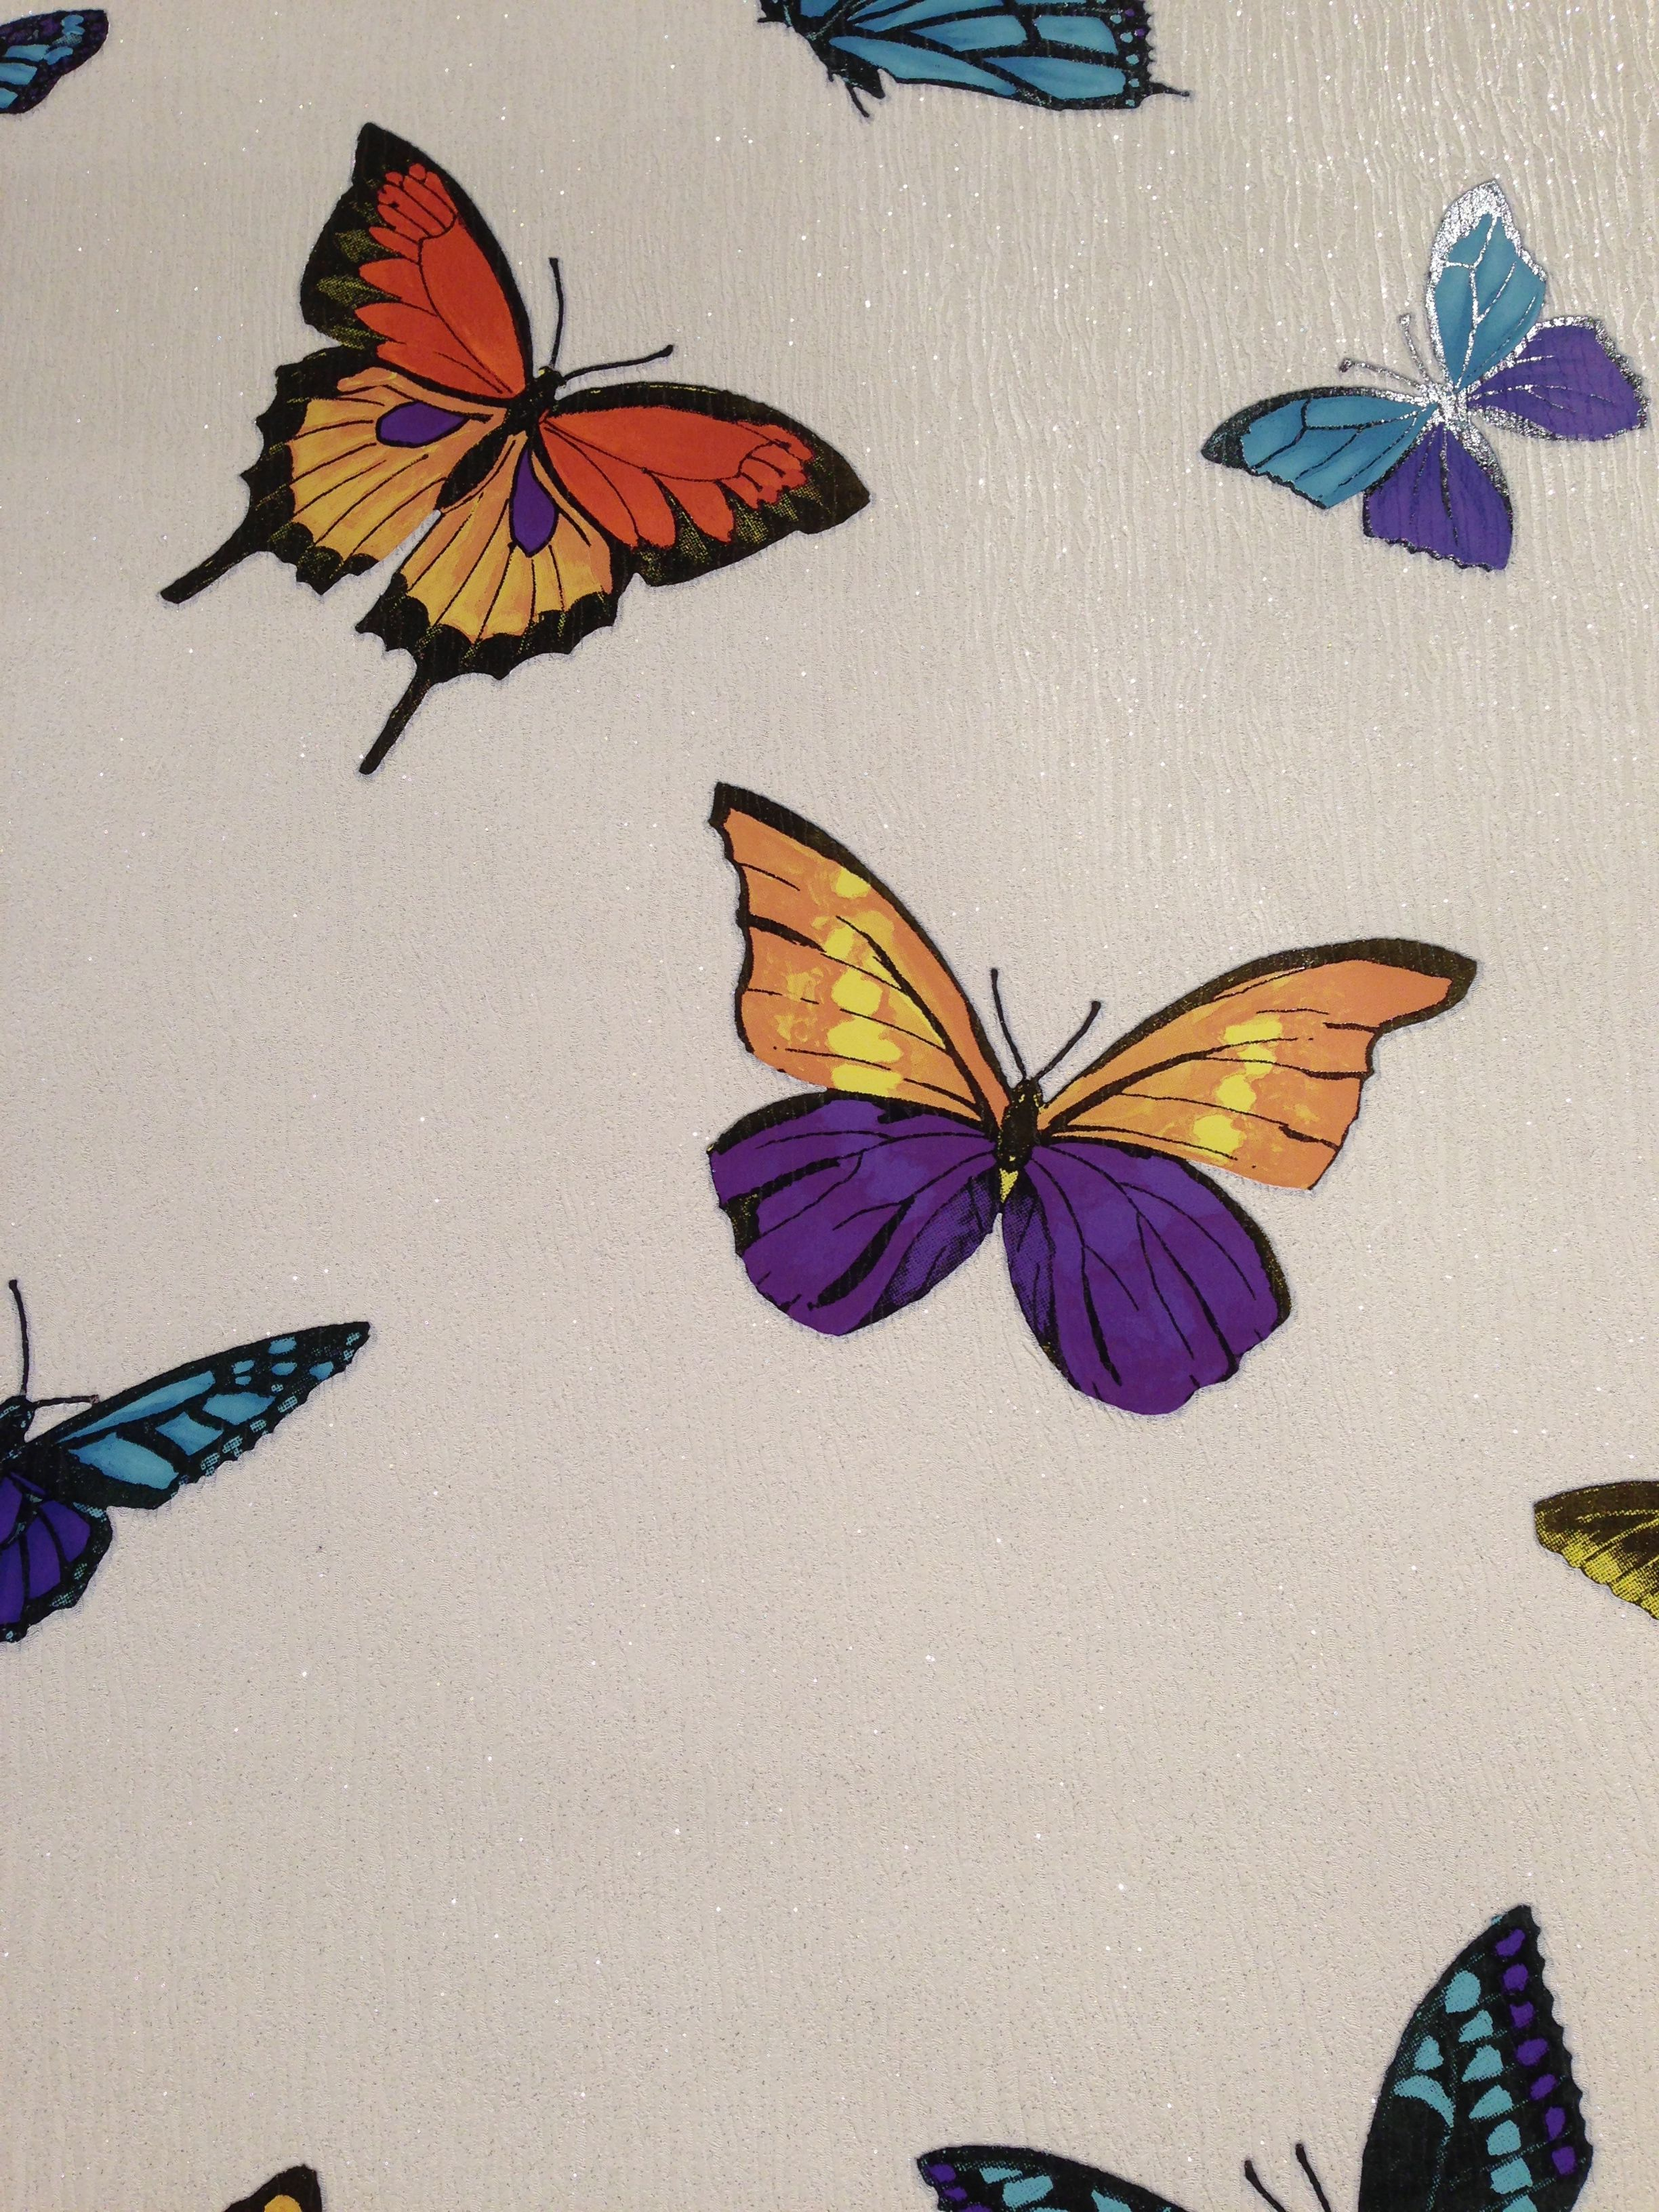 The flutterby wallpaper can make you feel at one with for Flutterby wallpaper